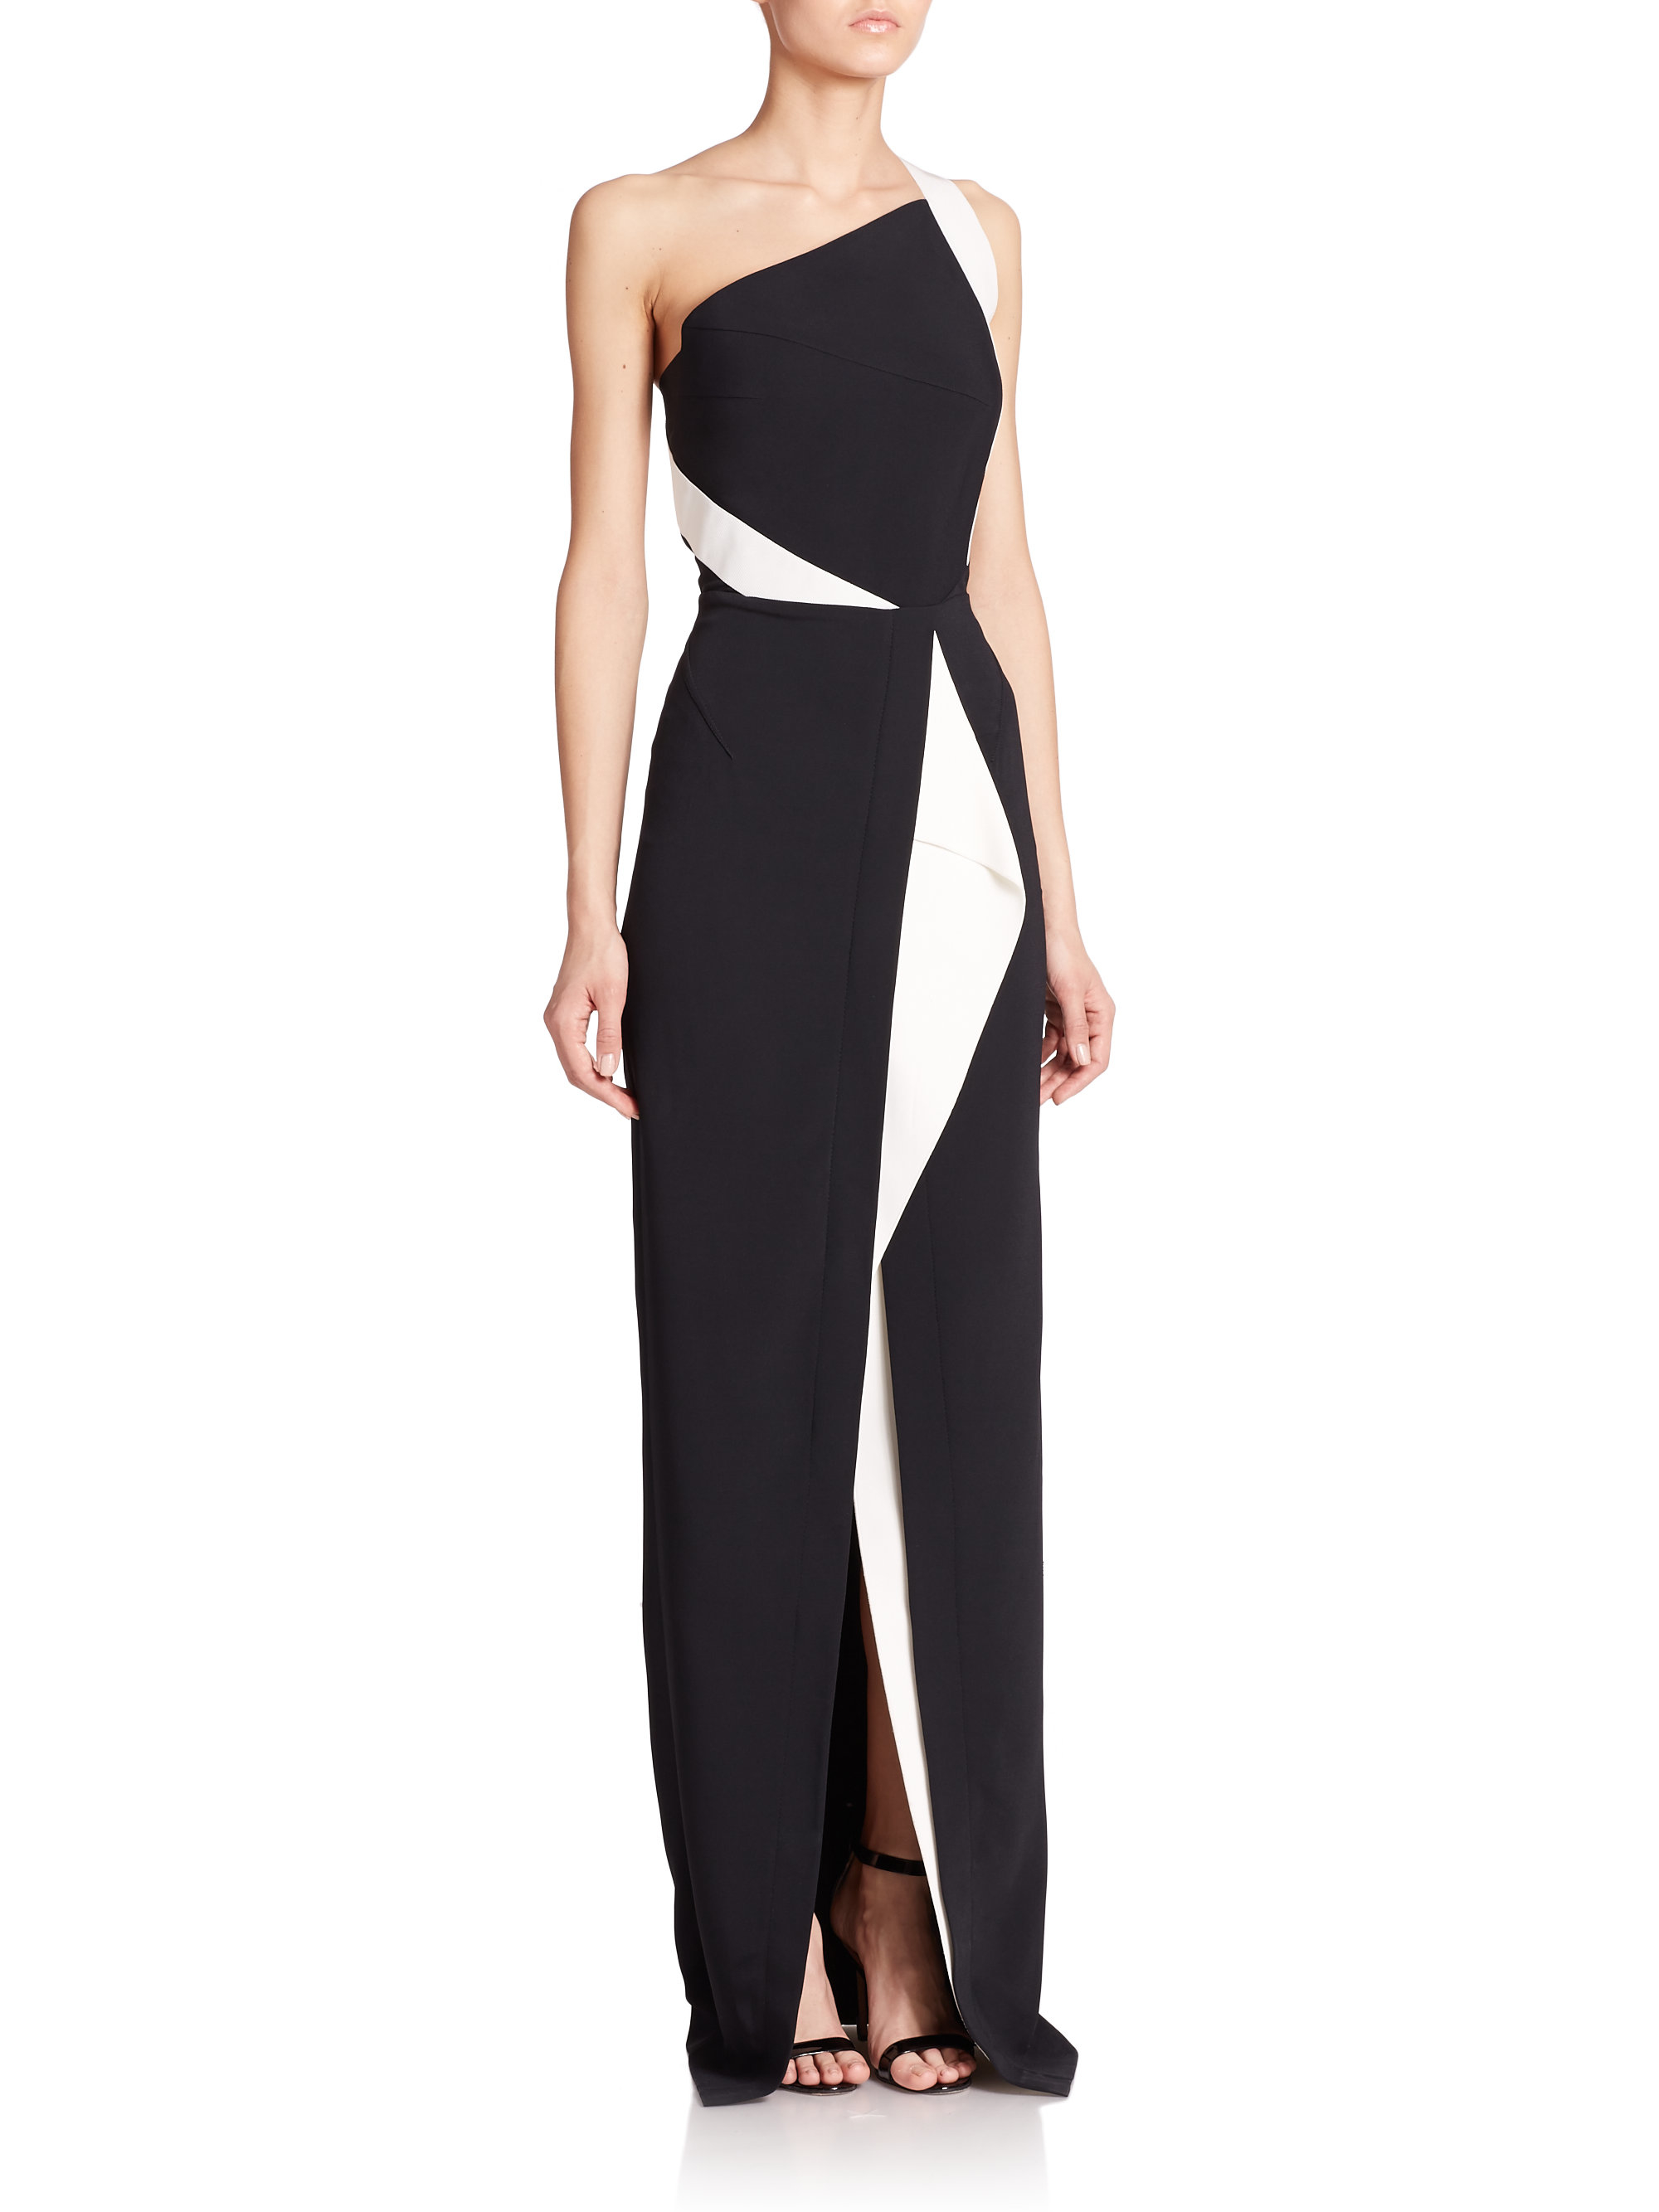 One shoulder dress black and white